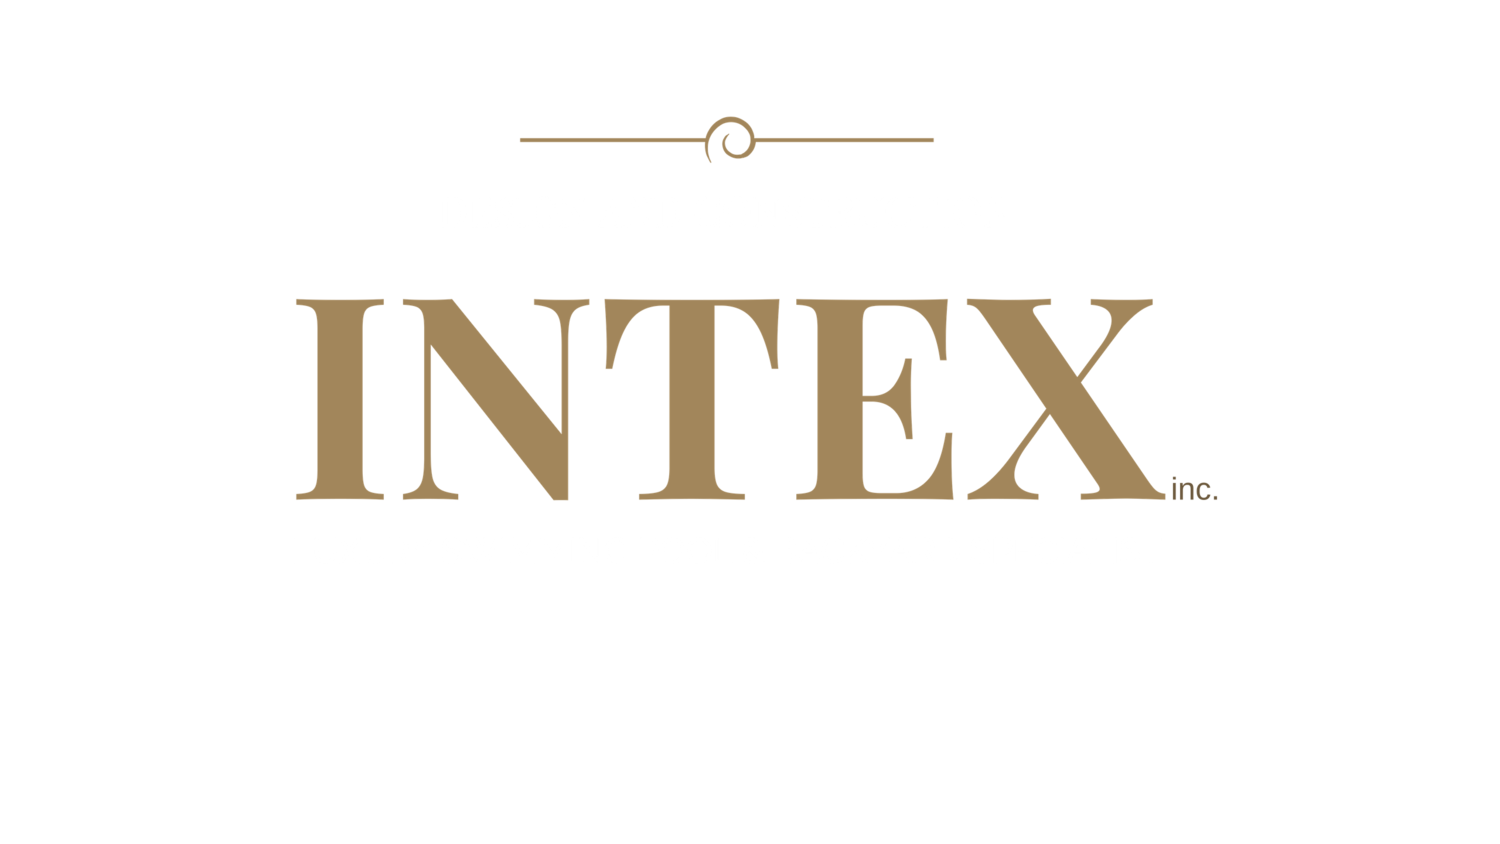 Intex design